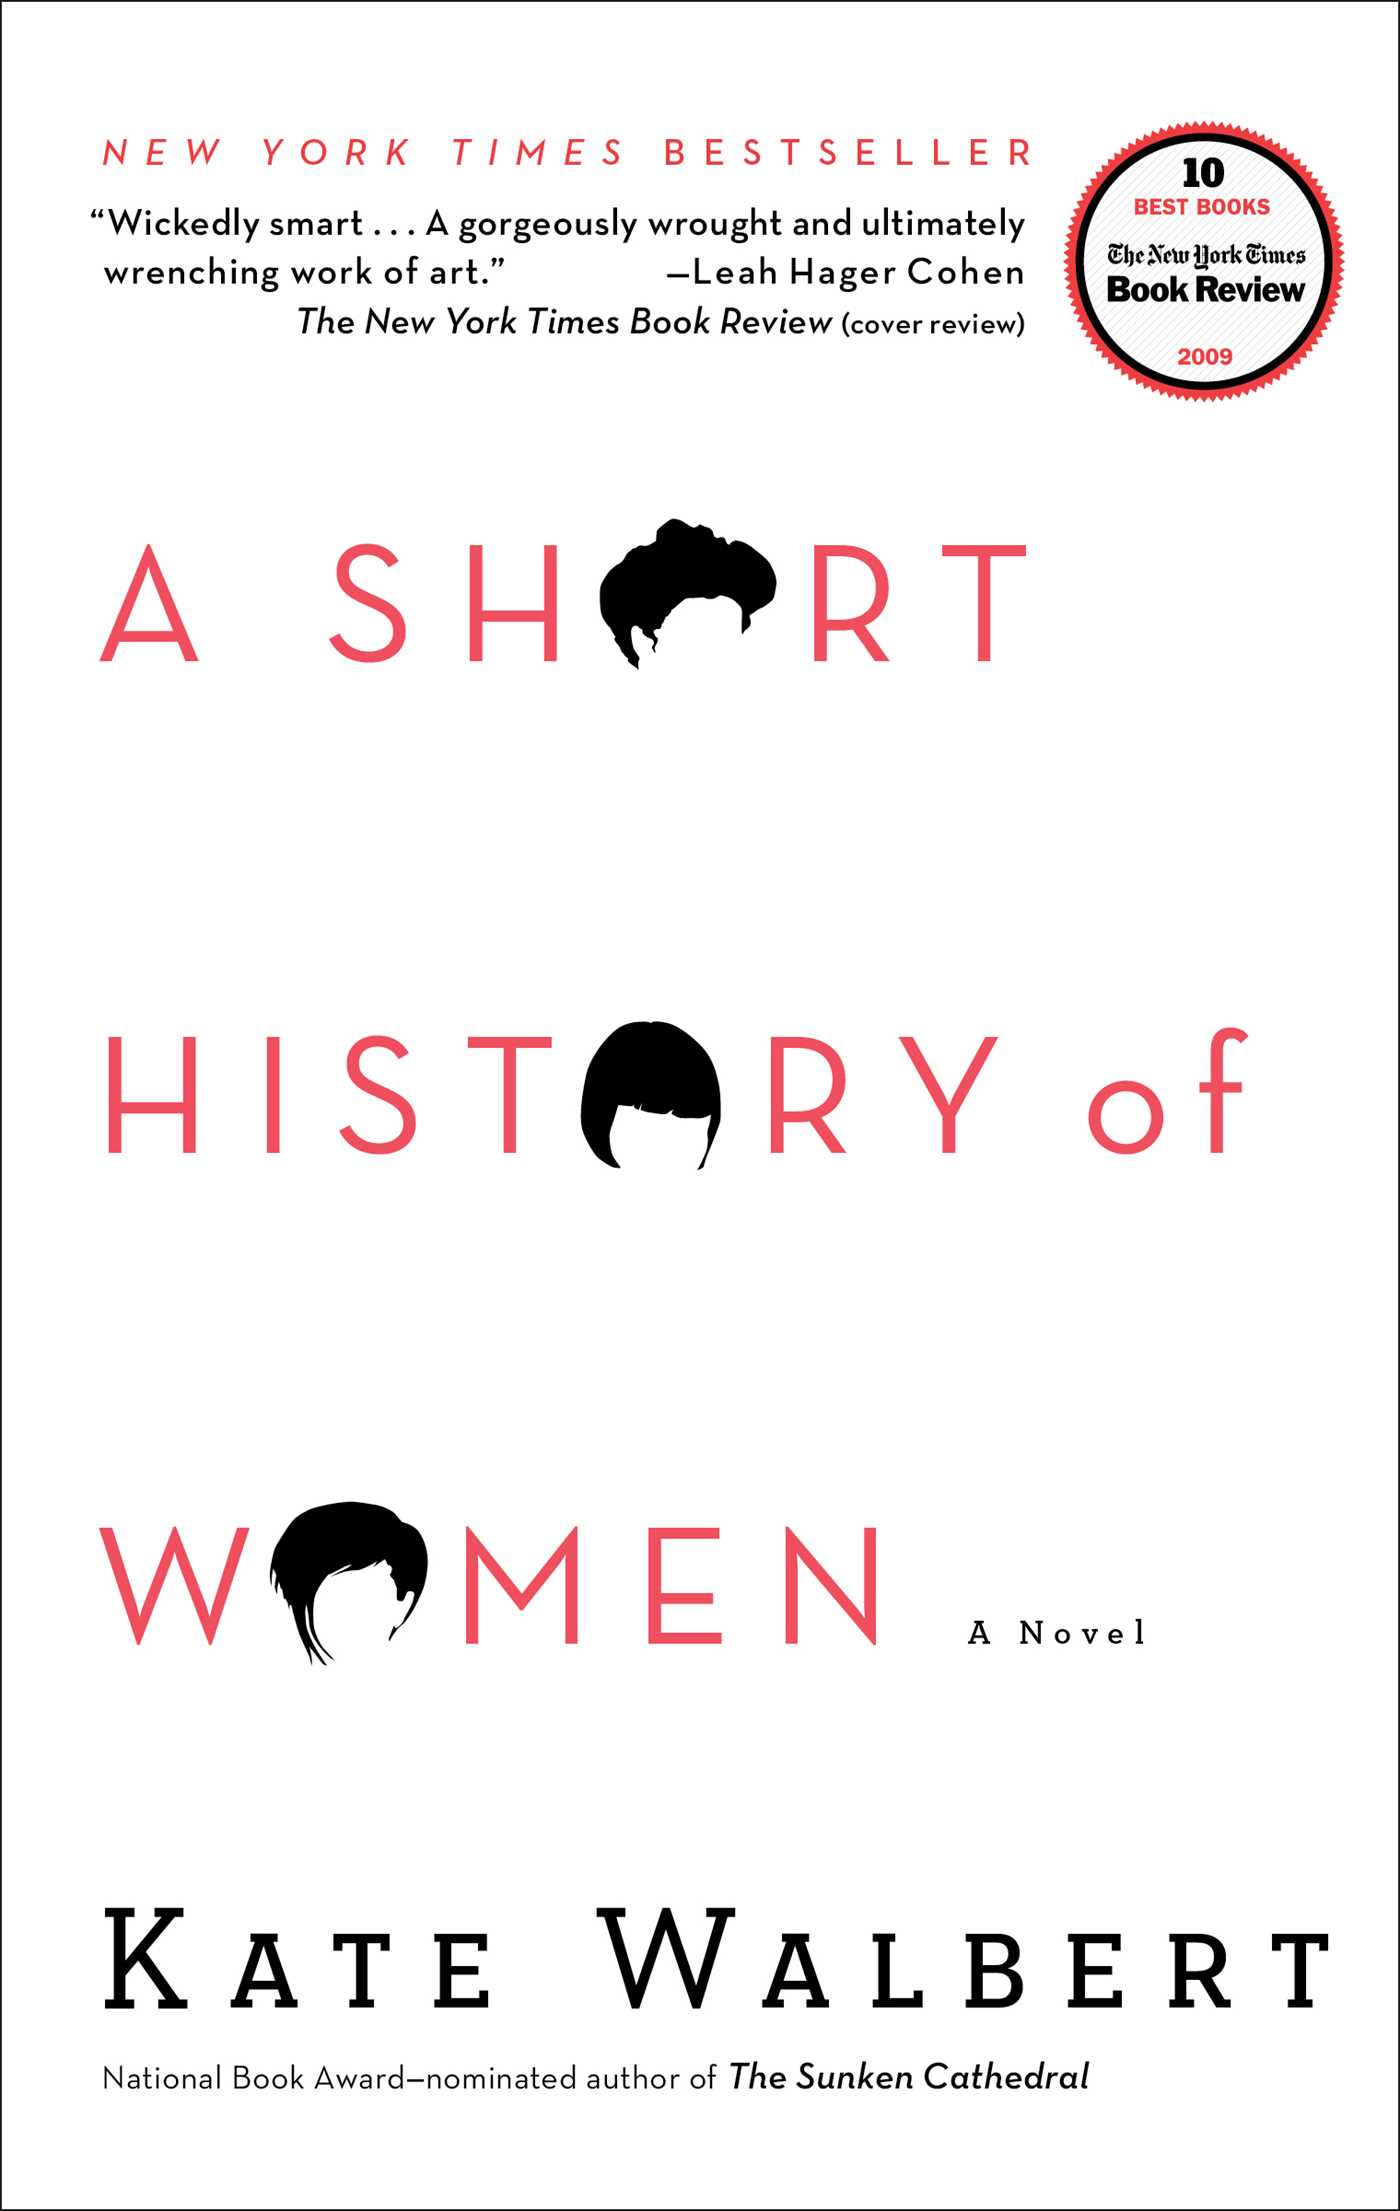 A short history of women 9781416594994 hr